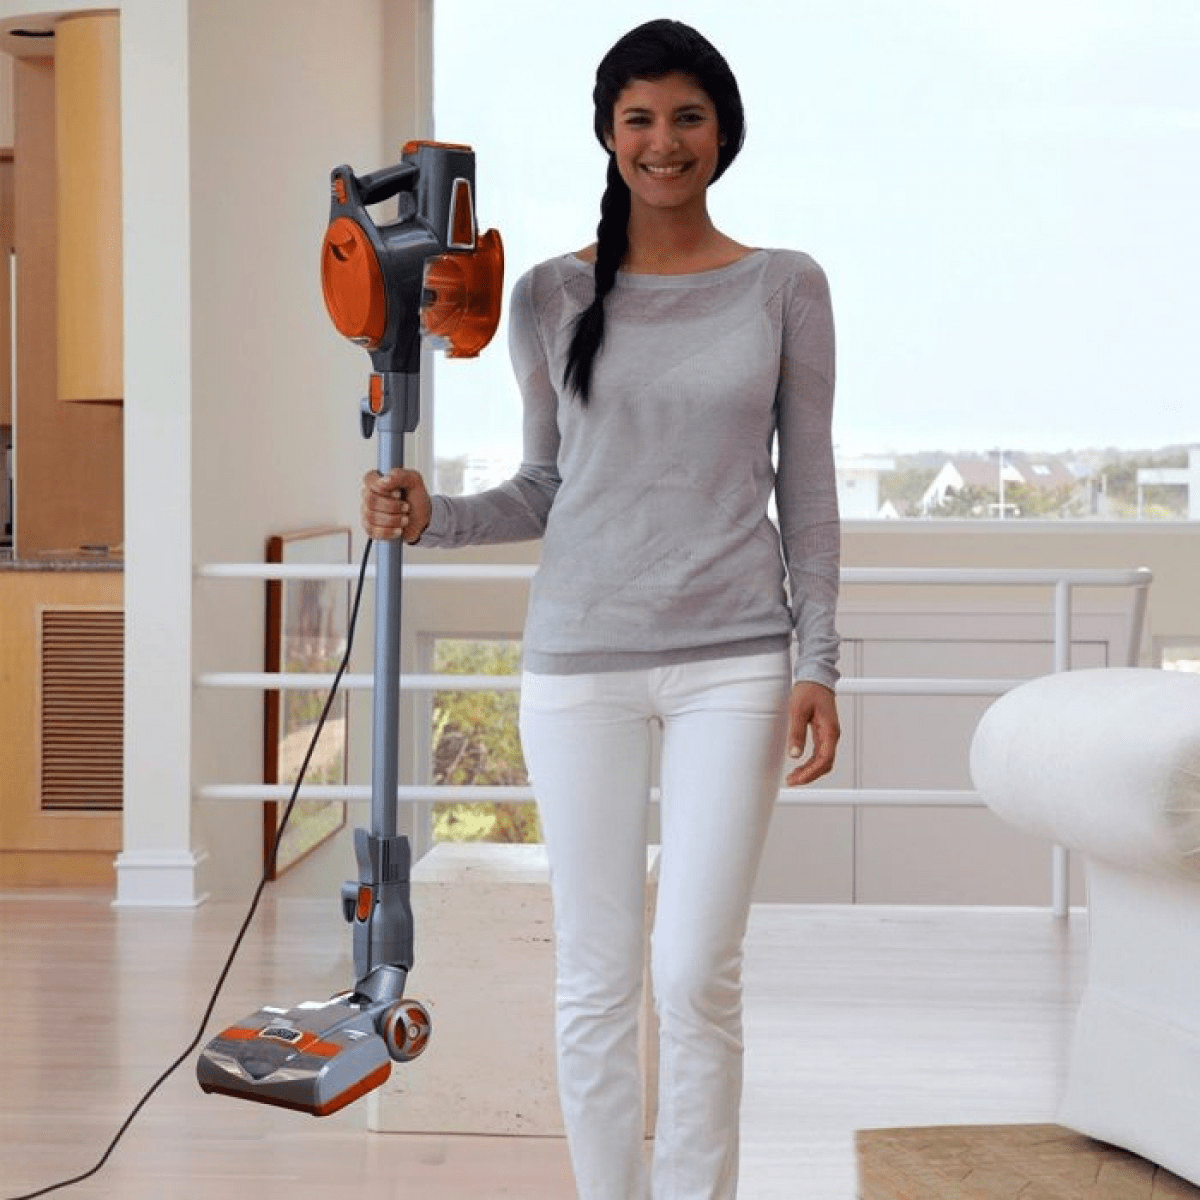 Introducing Shark Vacuum Cleaners